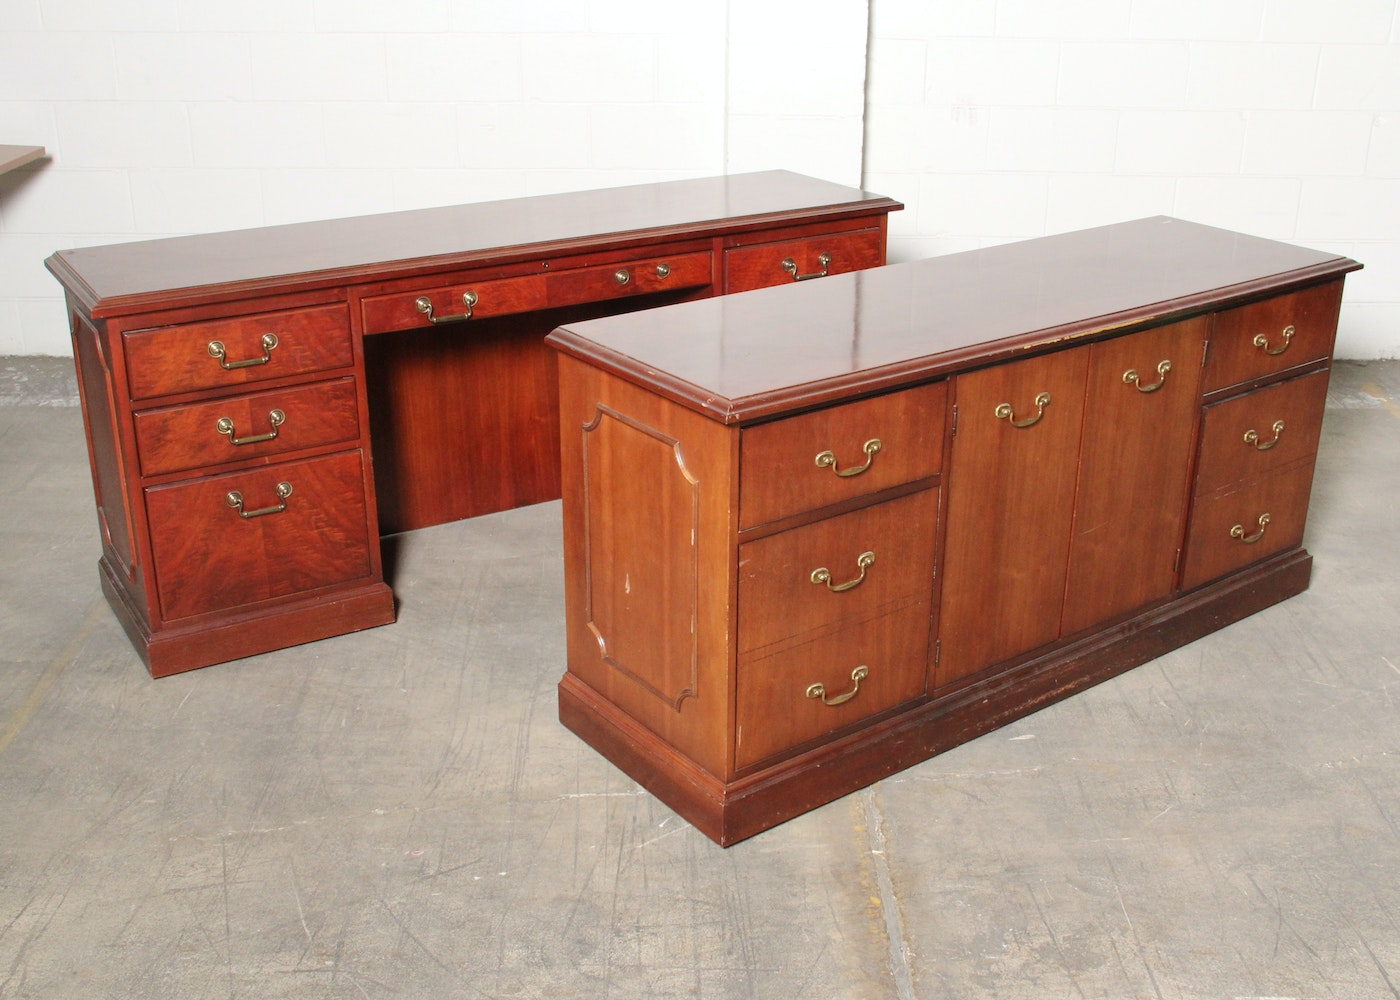 Kimball office desk and credenza ebth - Kimball office desk ...